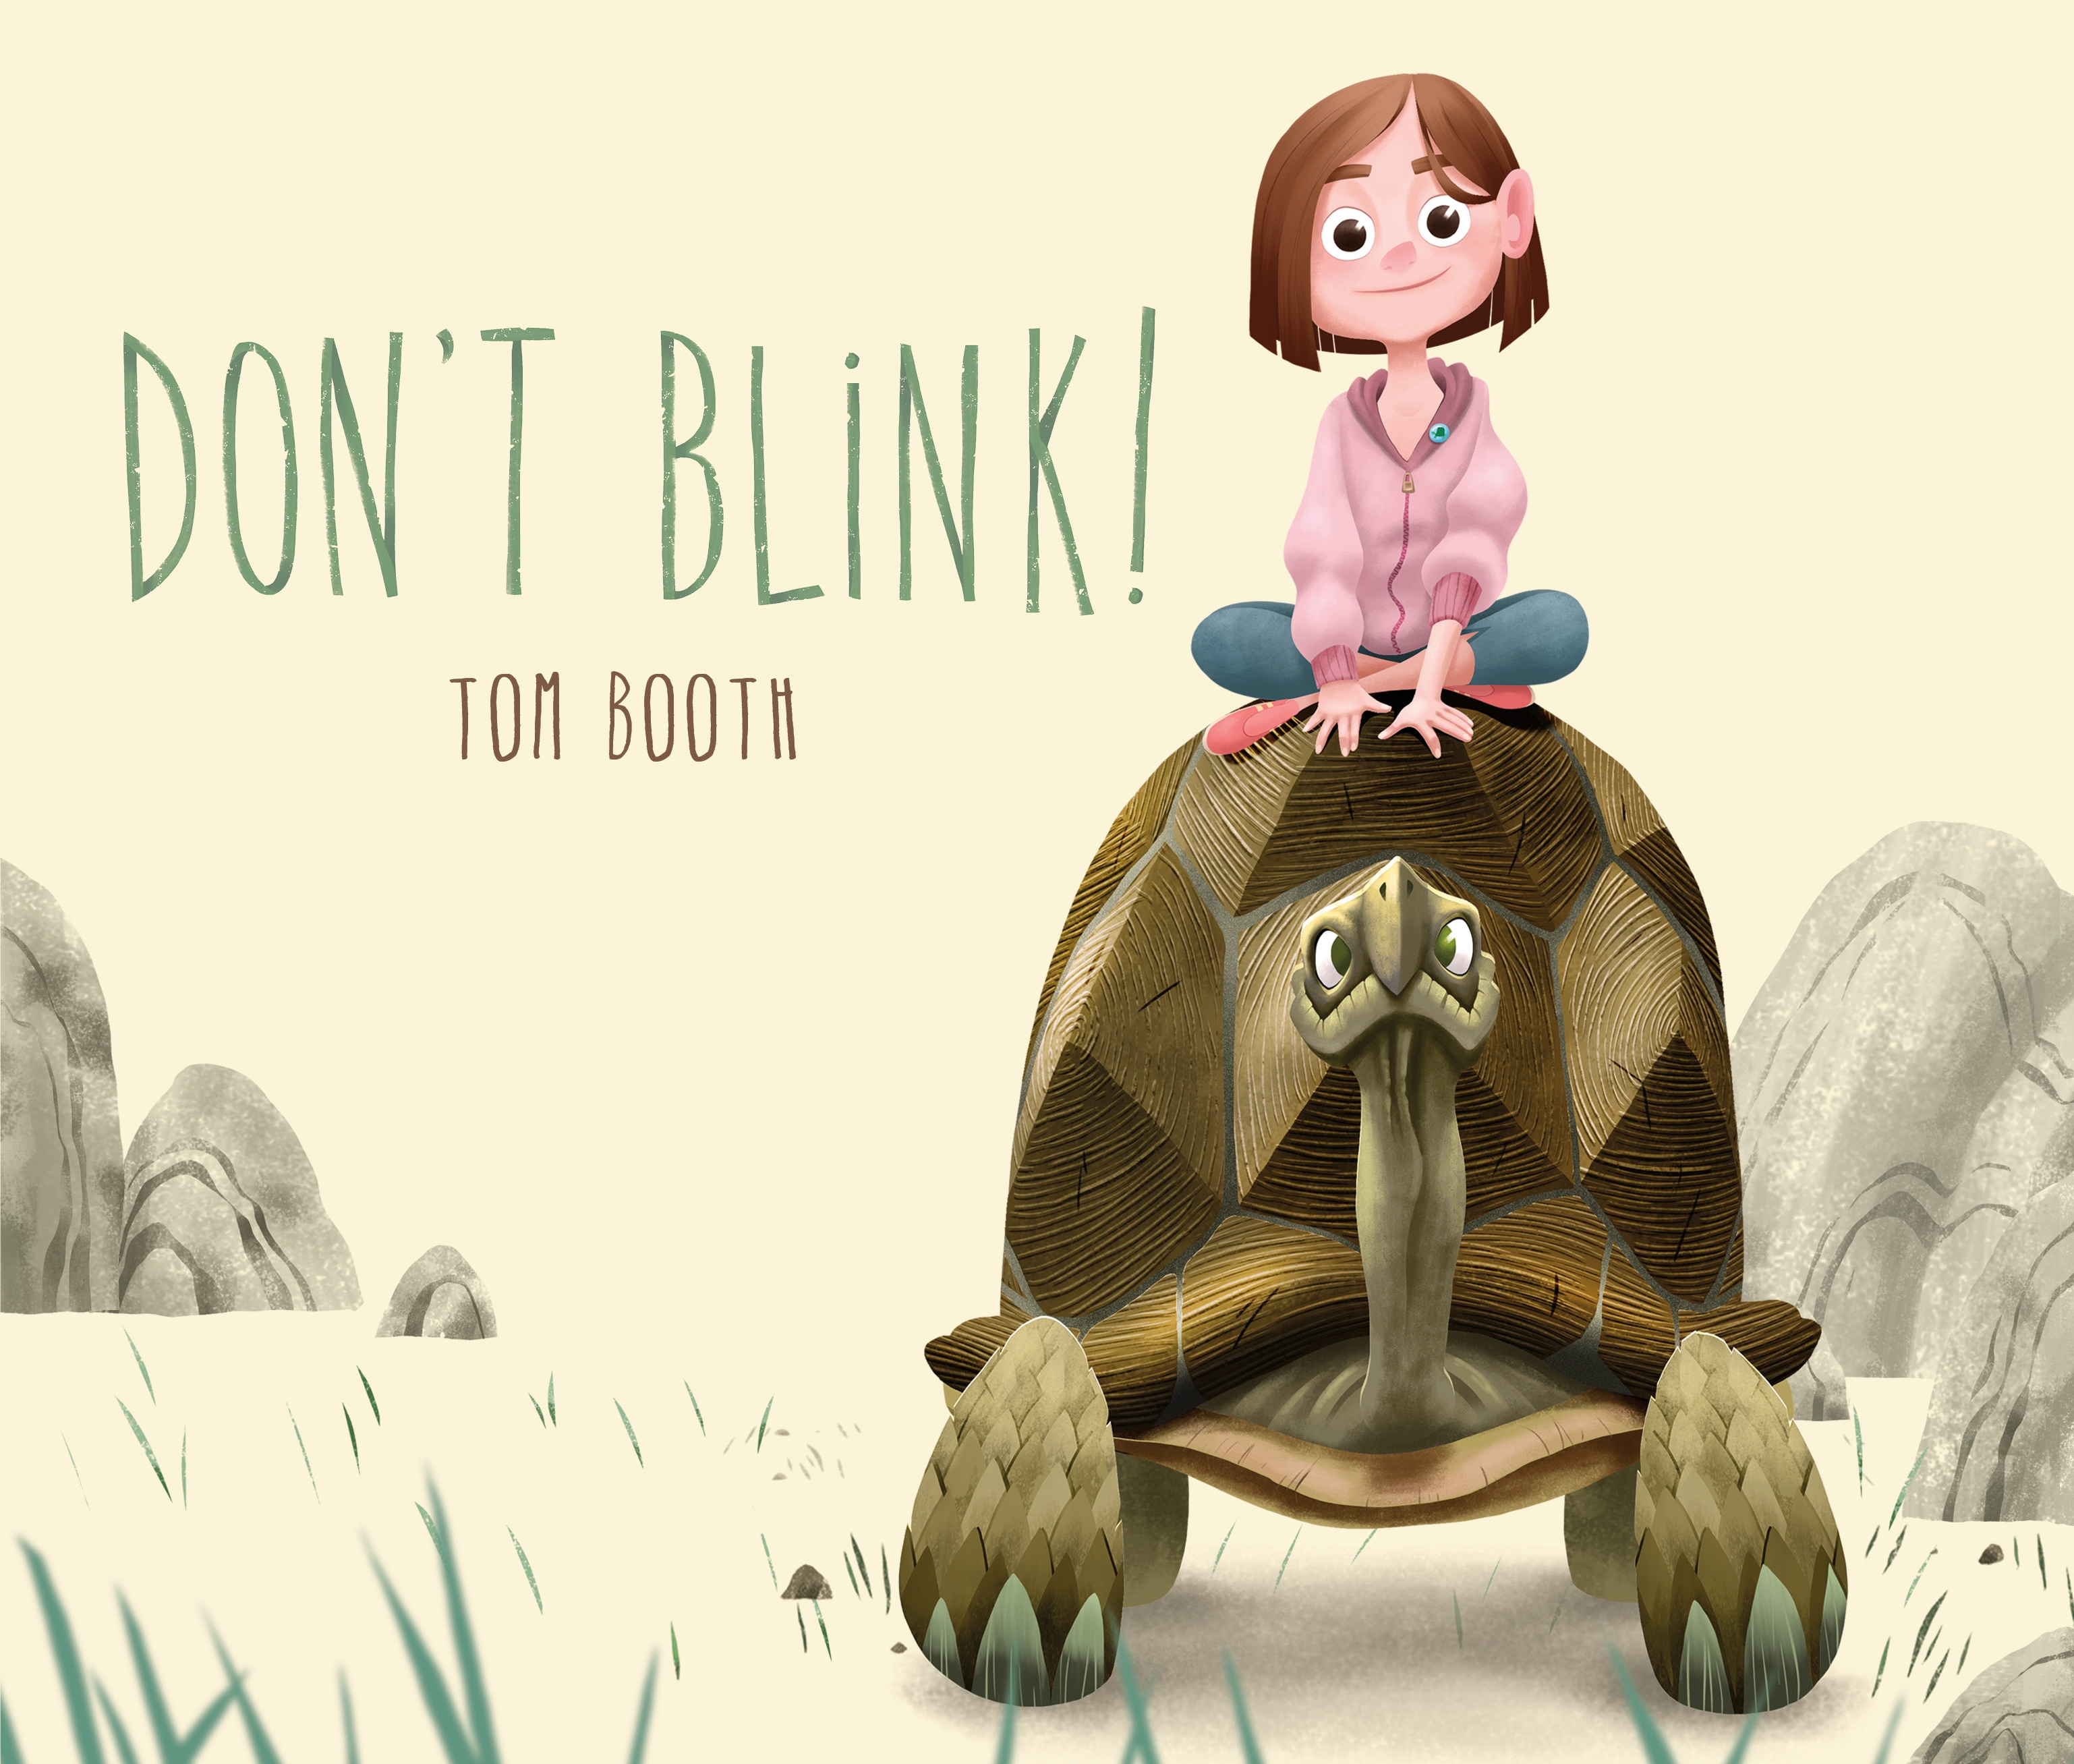 Sunday Story Time with Tom Booth (Author & Illustrator of Don't Blink!)